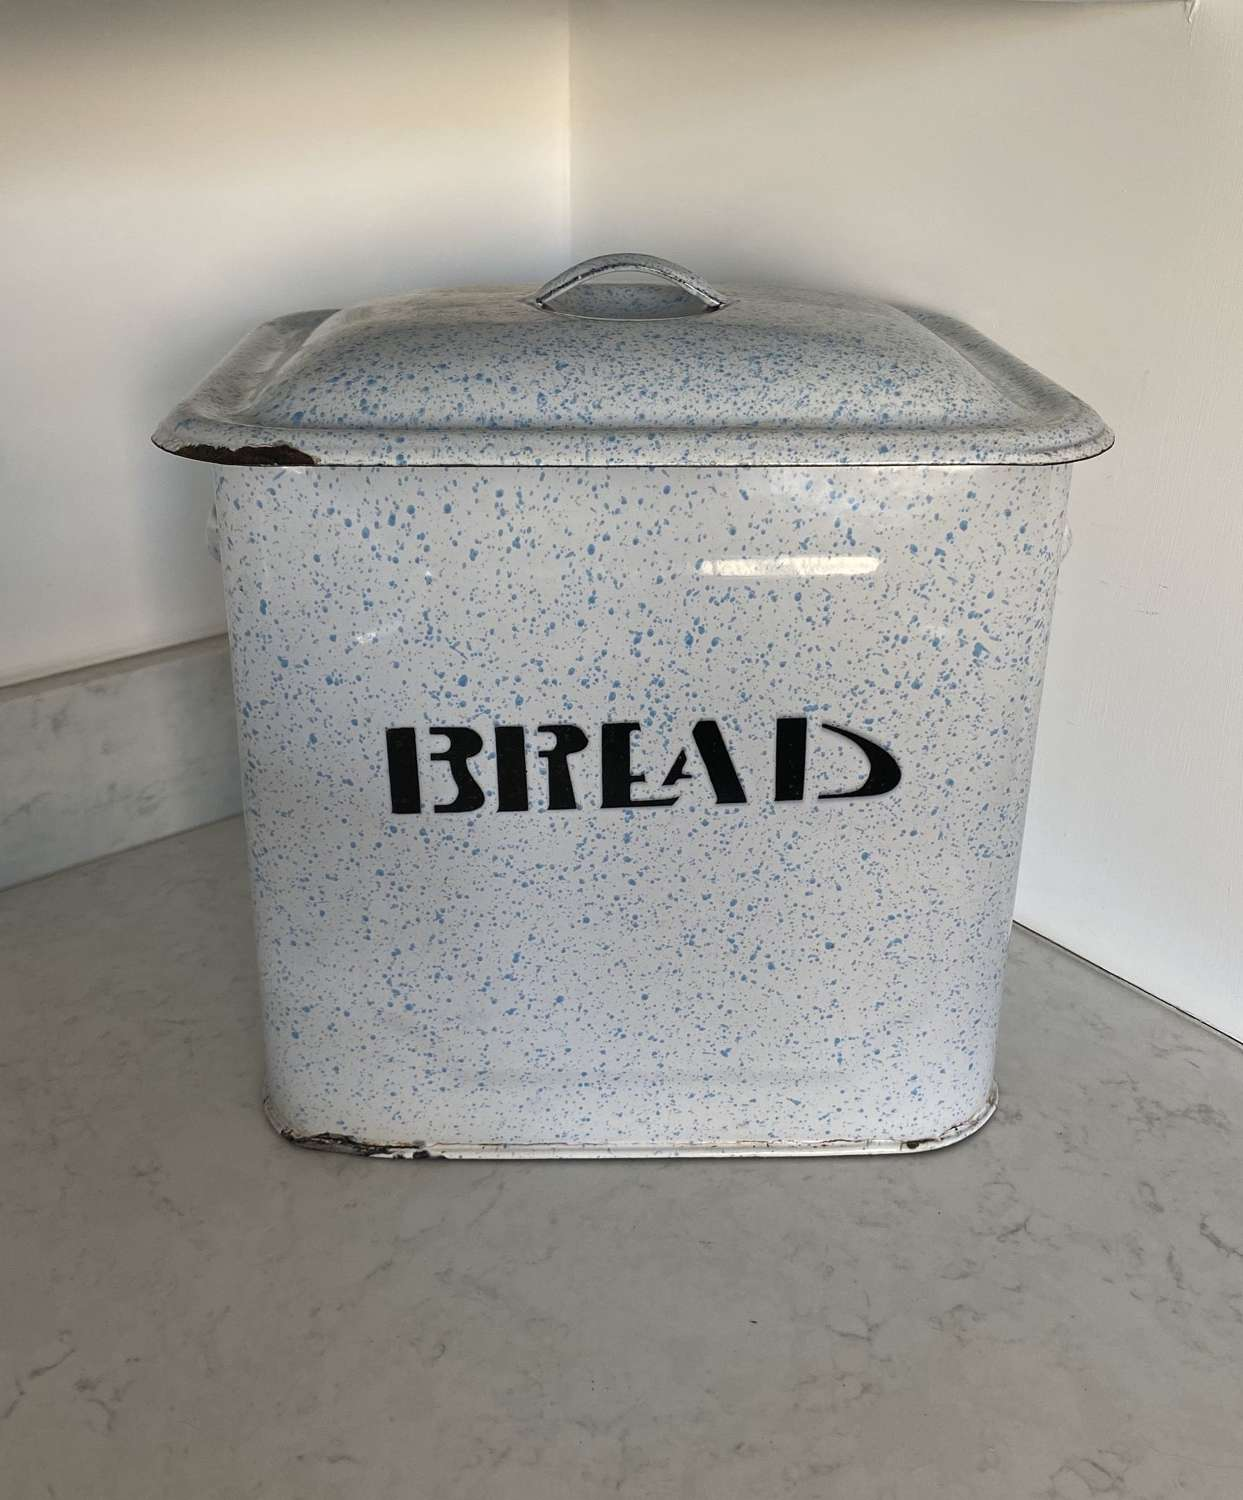 Early 20th Century Rare Speckled Blue Enamel Bread Bin